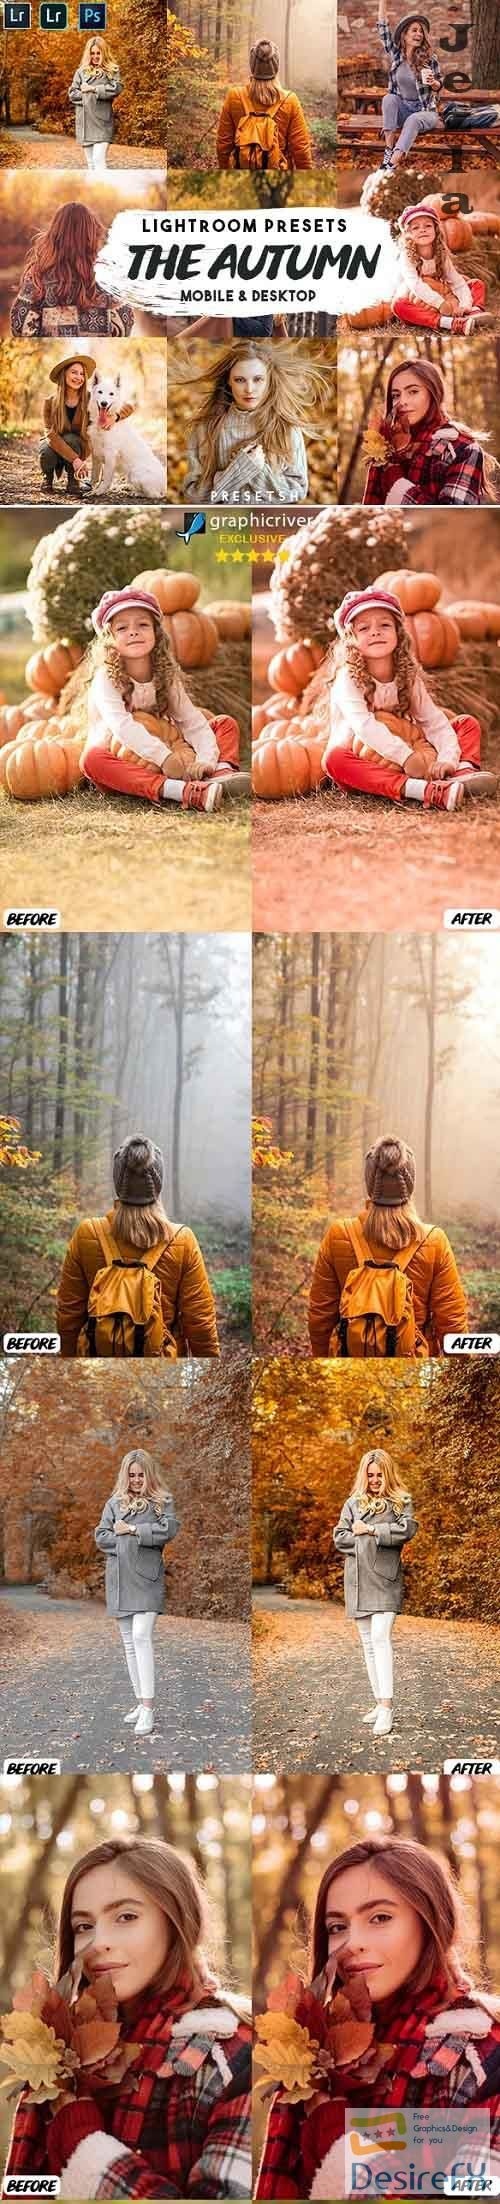 CreativeMarket - The Autumn Lightroom Presets 5506478